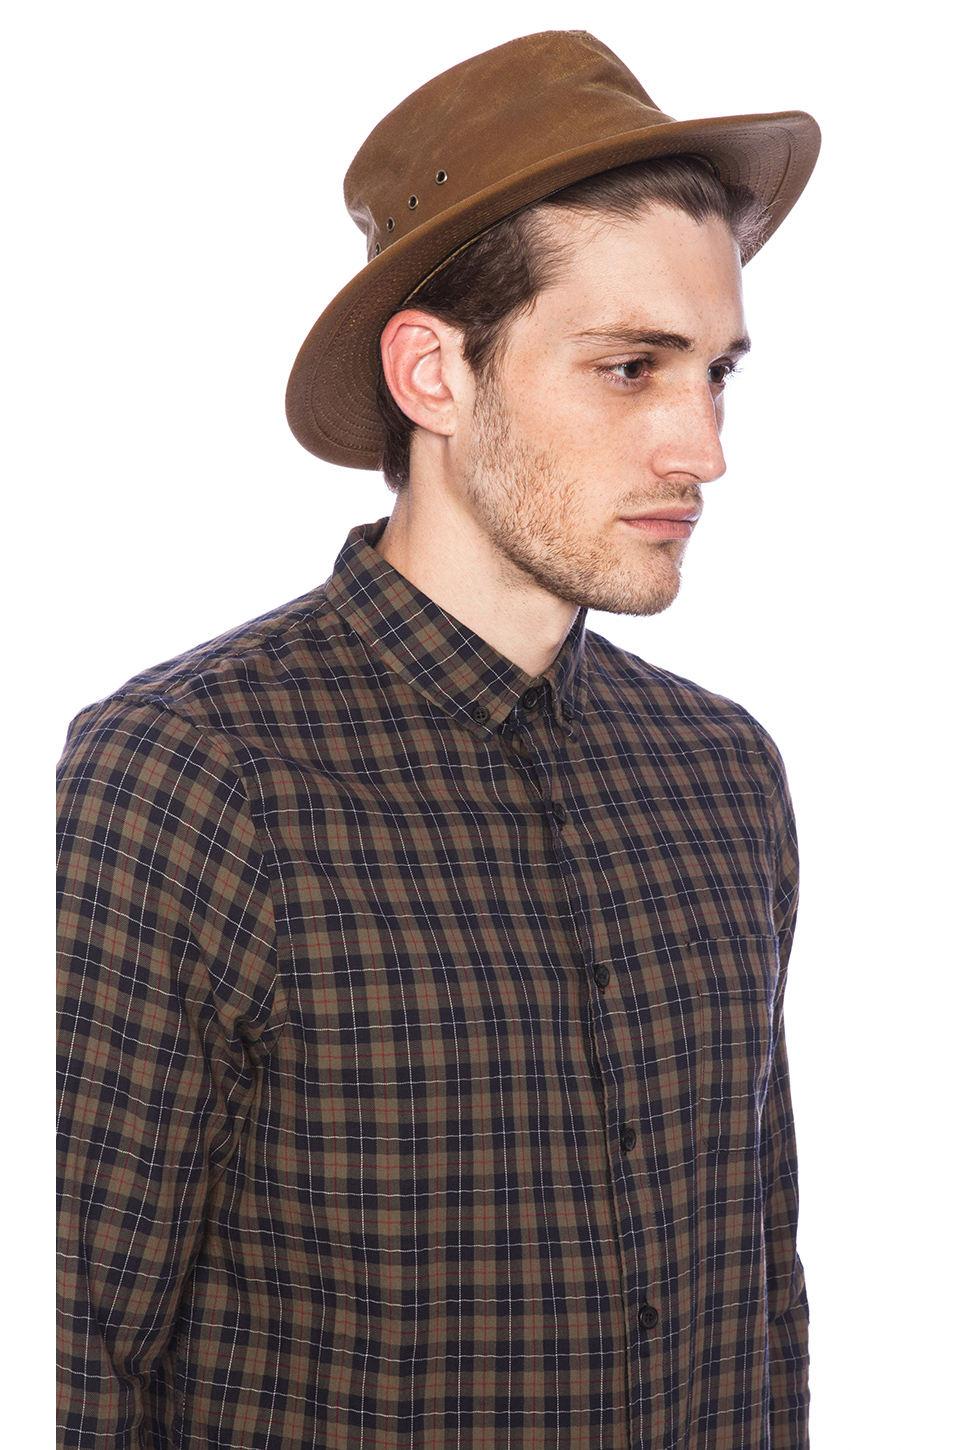 Lyst - Filson Tin Cloth Packer Hat in Brown for Men 001eaf2ab27